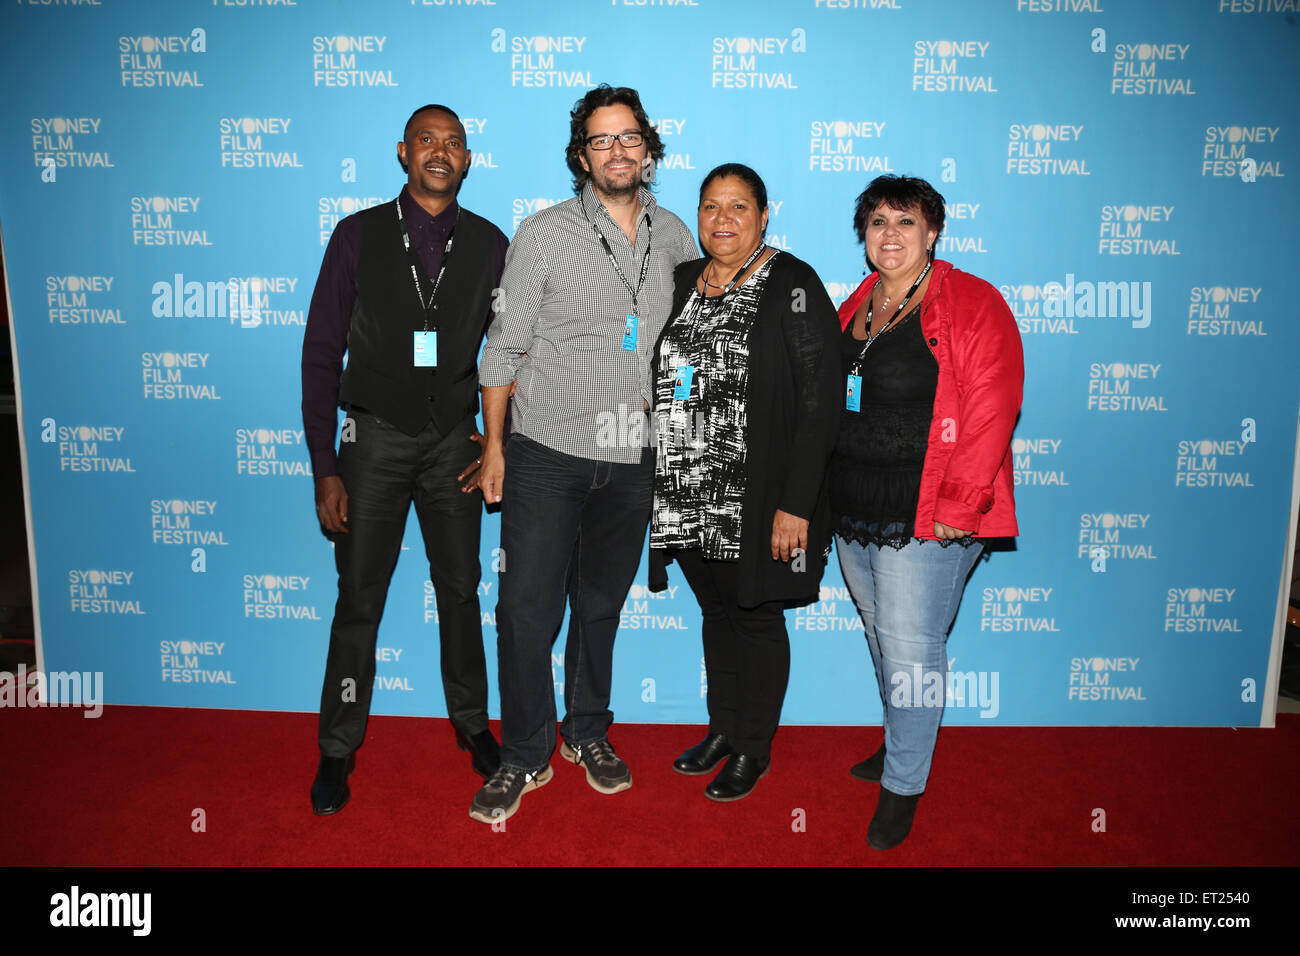 Sydney, Australia. 9 June 2015. Pictured: Naji director Kimberly West, producer Jodie Bell, custodian Terry Hunter and concept creator Petris Torres.